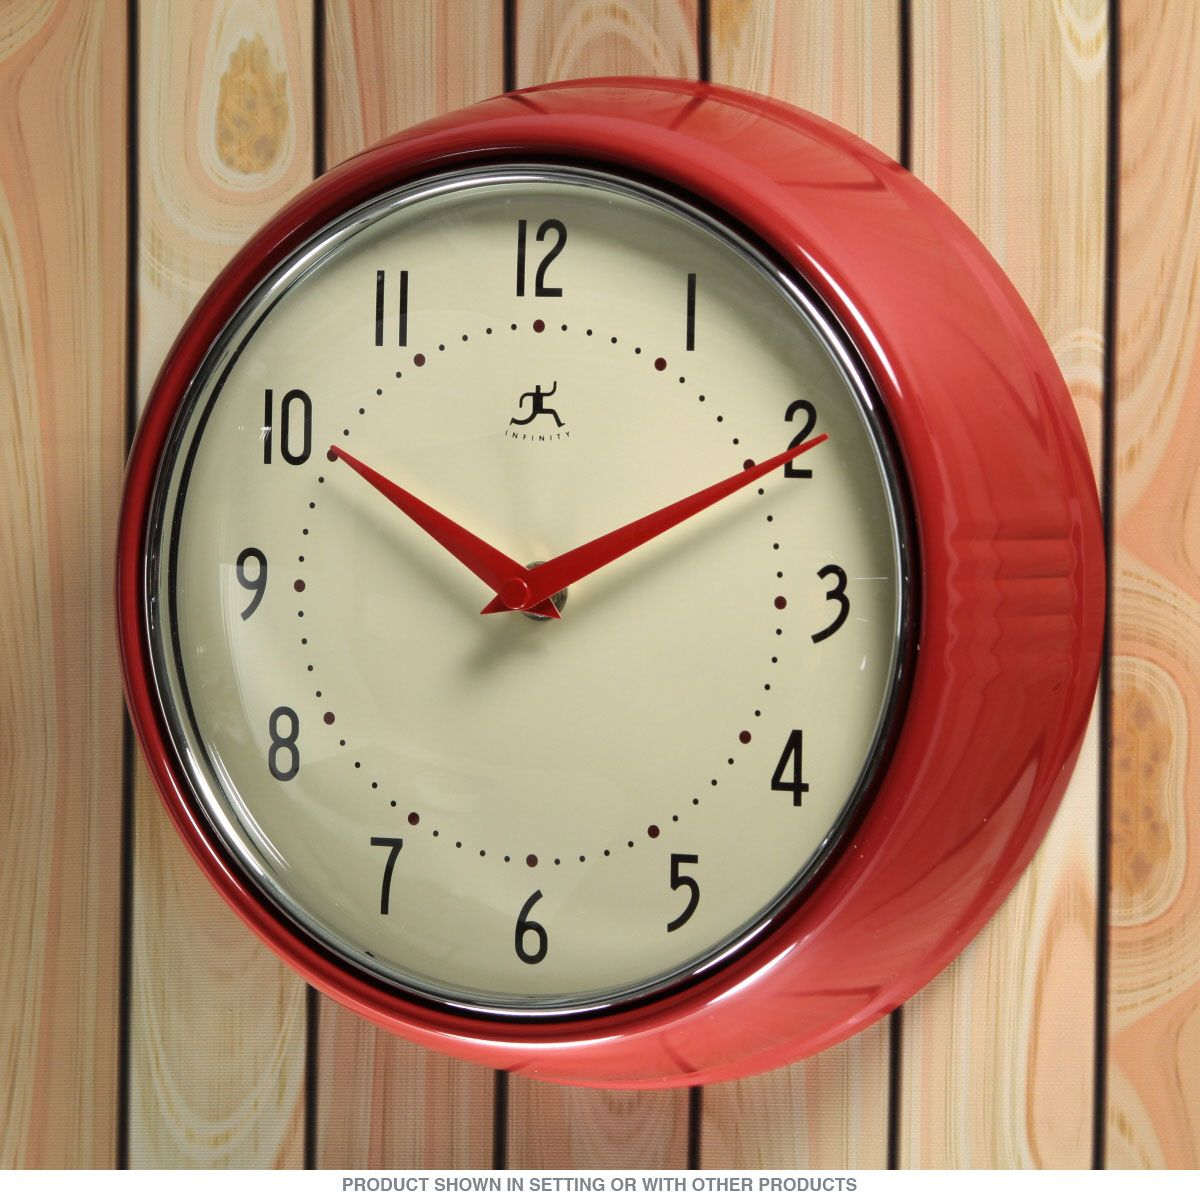 Good Bring Some Vintage Style Into Your Kitchen With This Retro Kitchen Clock In  Red. Perfect